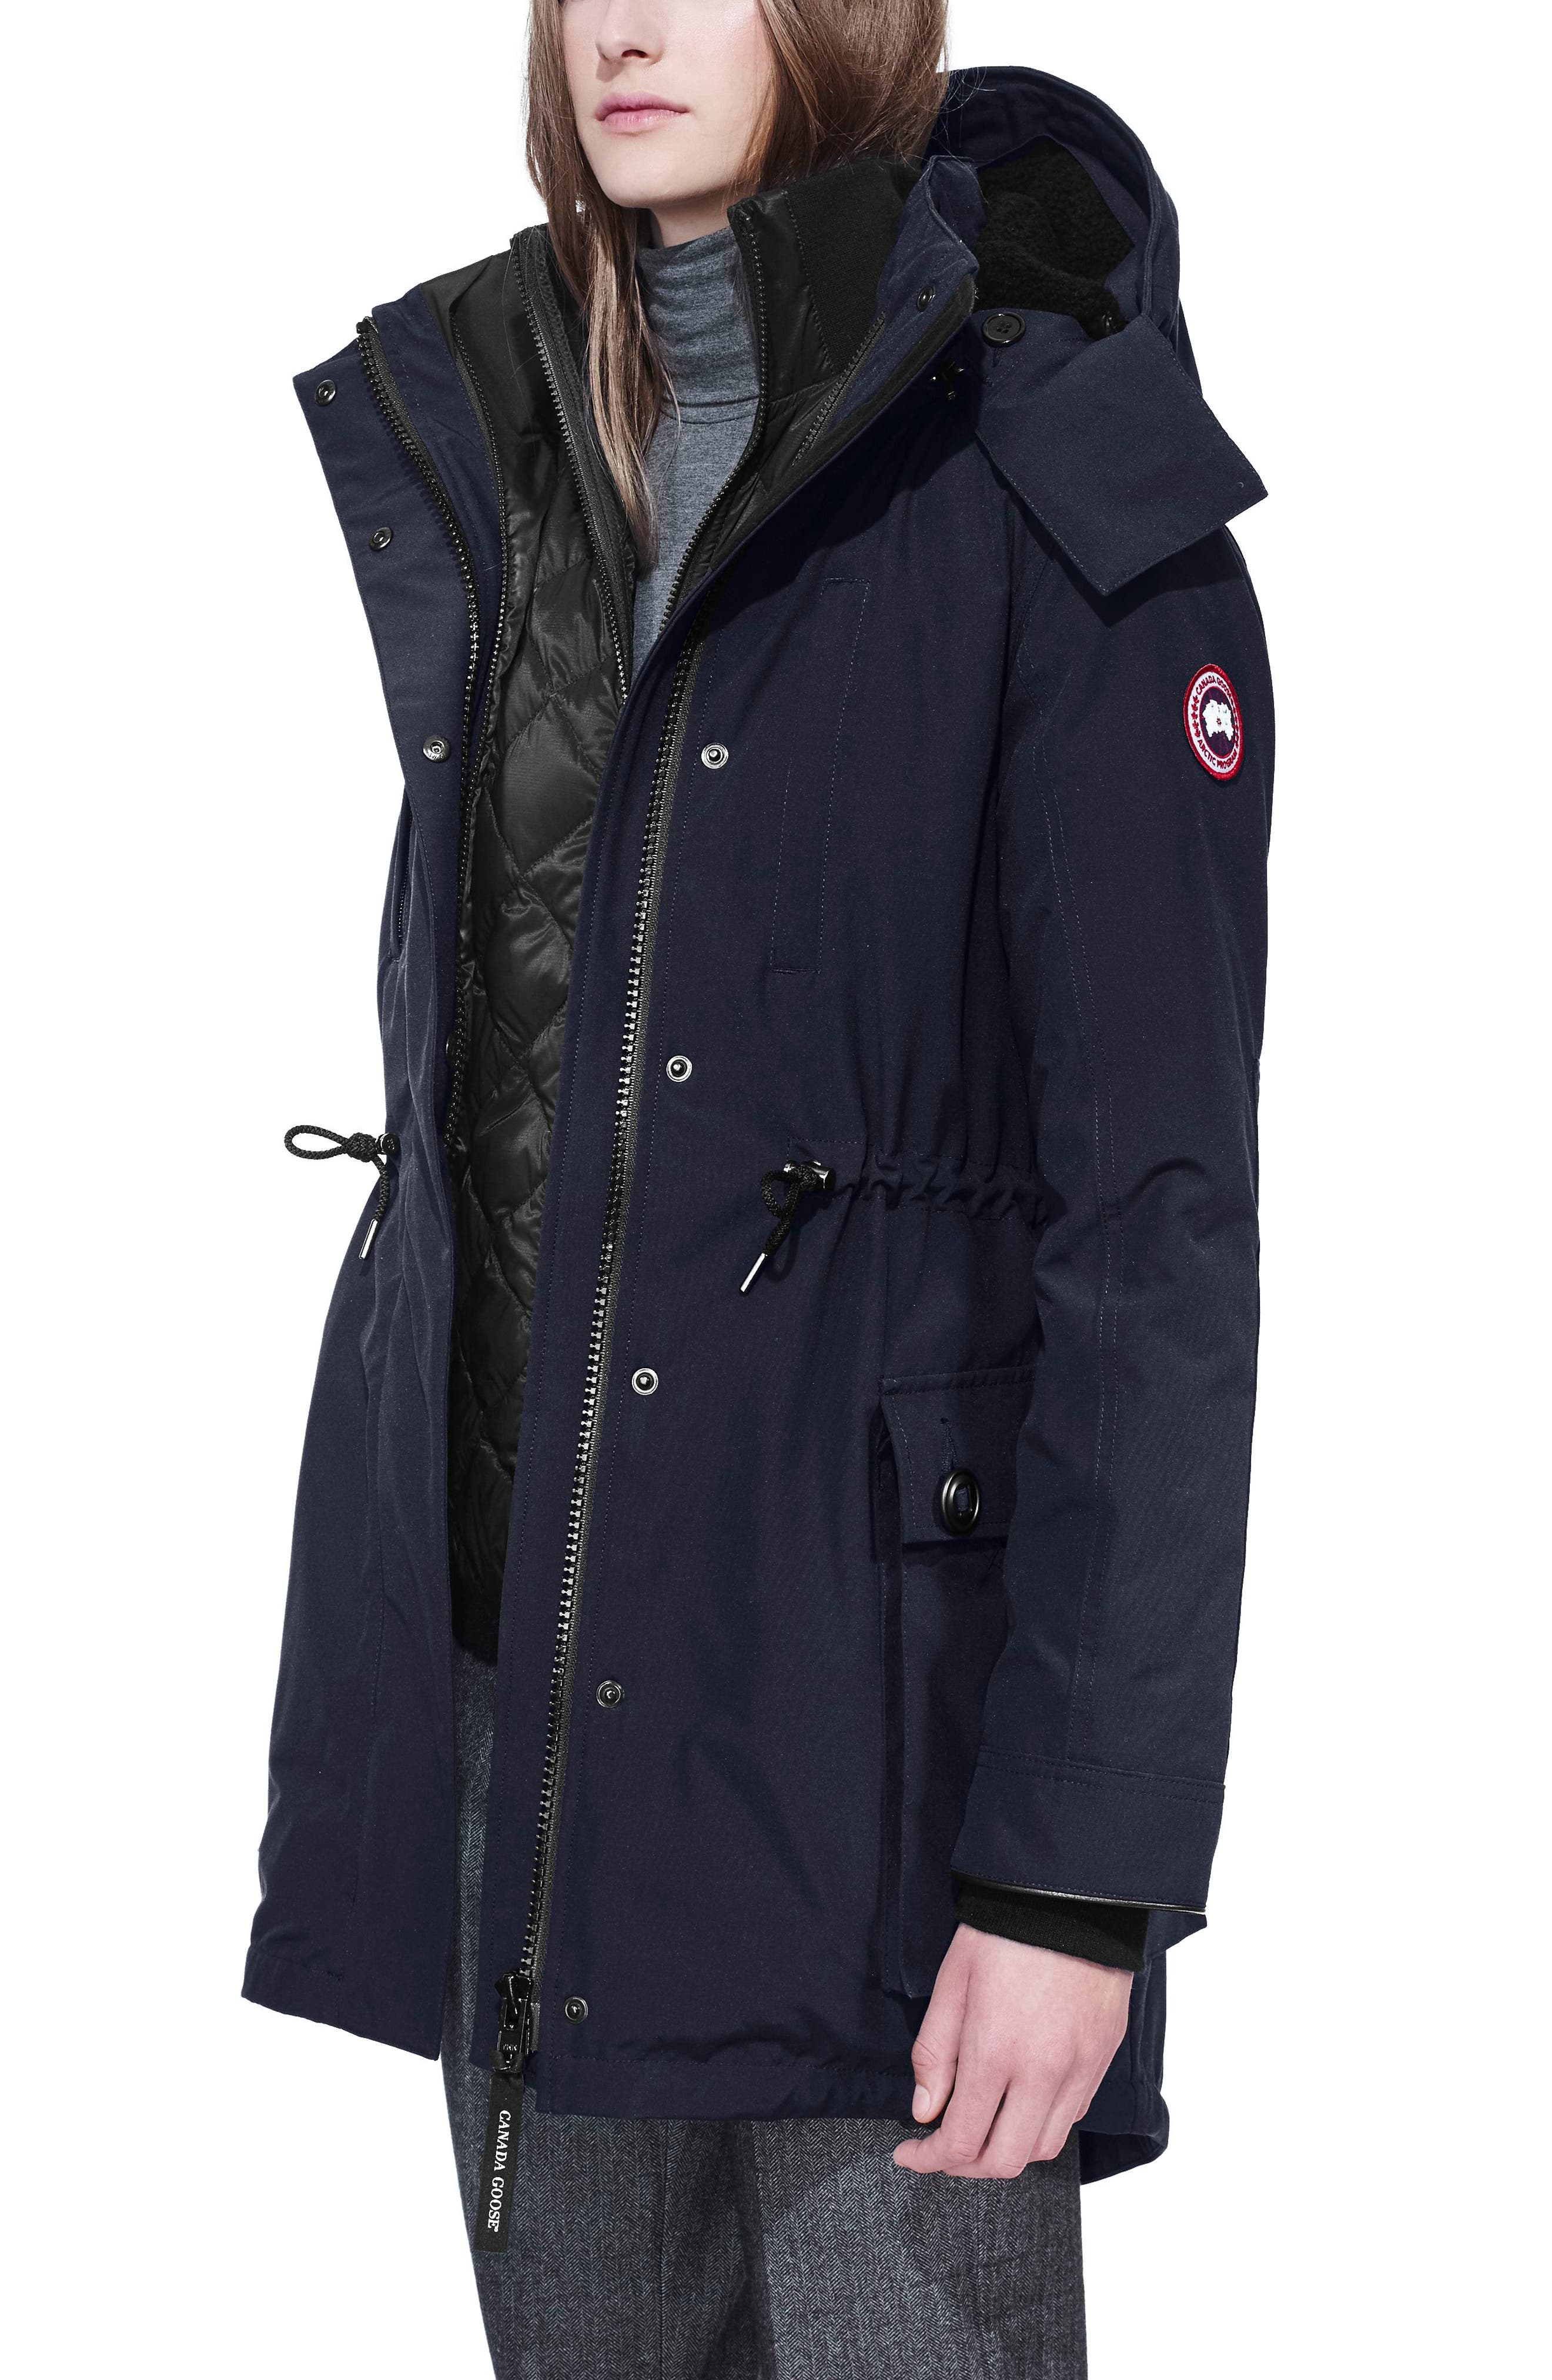 CANADA GOOSE, Perley Waterproof 675-Fill-Power Down 3-in-1 Parka, Alternate thumbnail 4, color, ADMIRAL BLUE